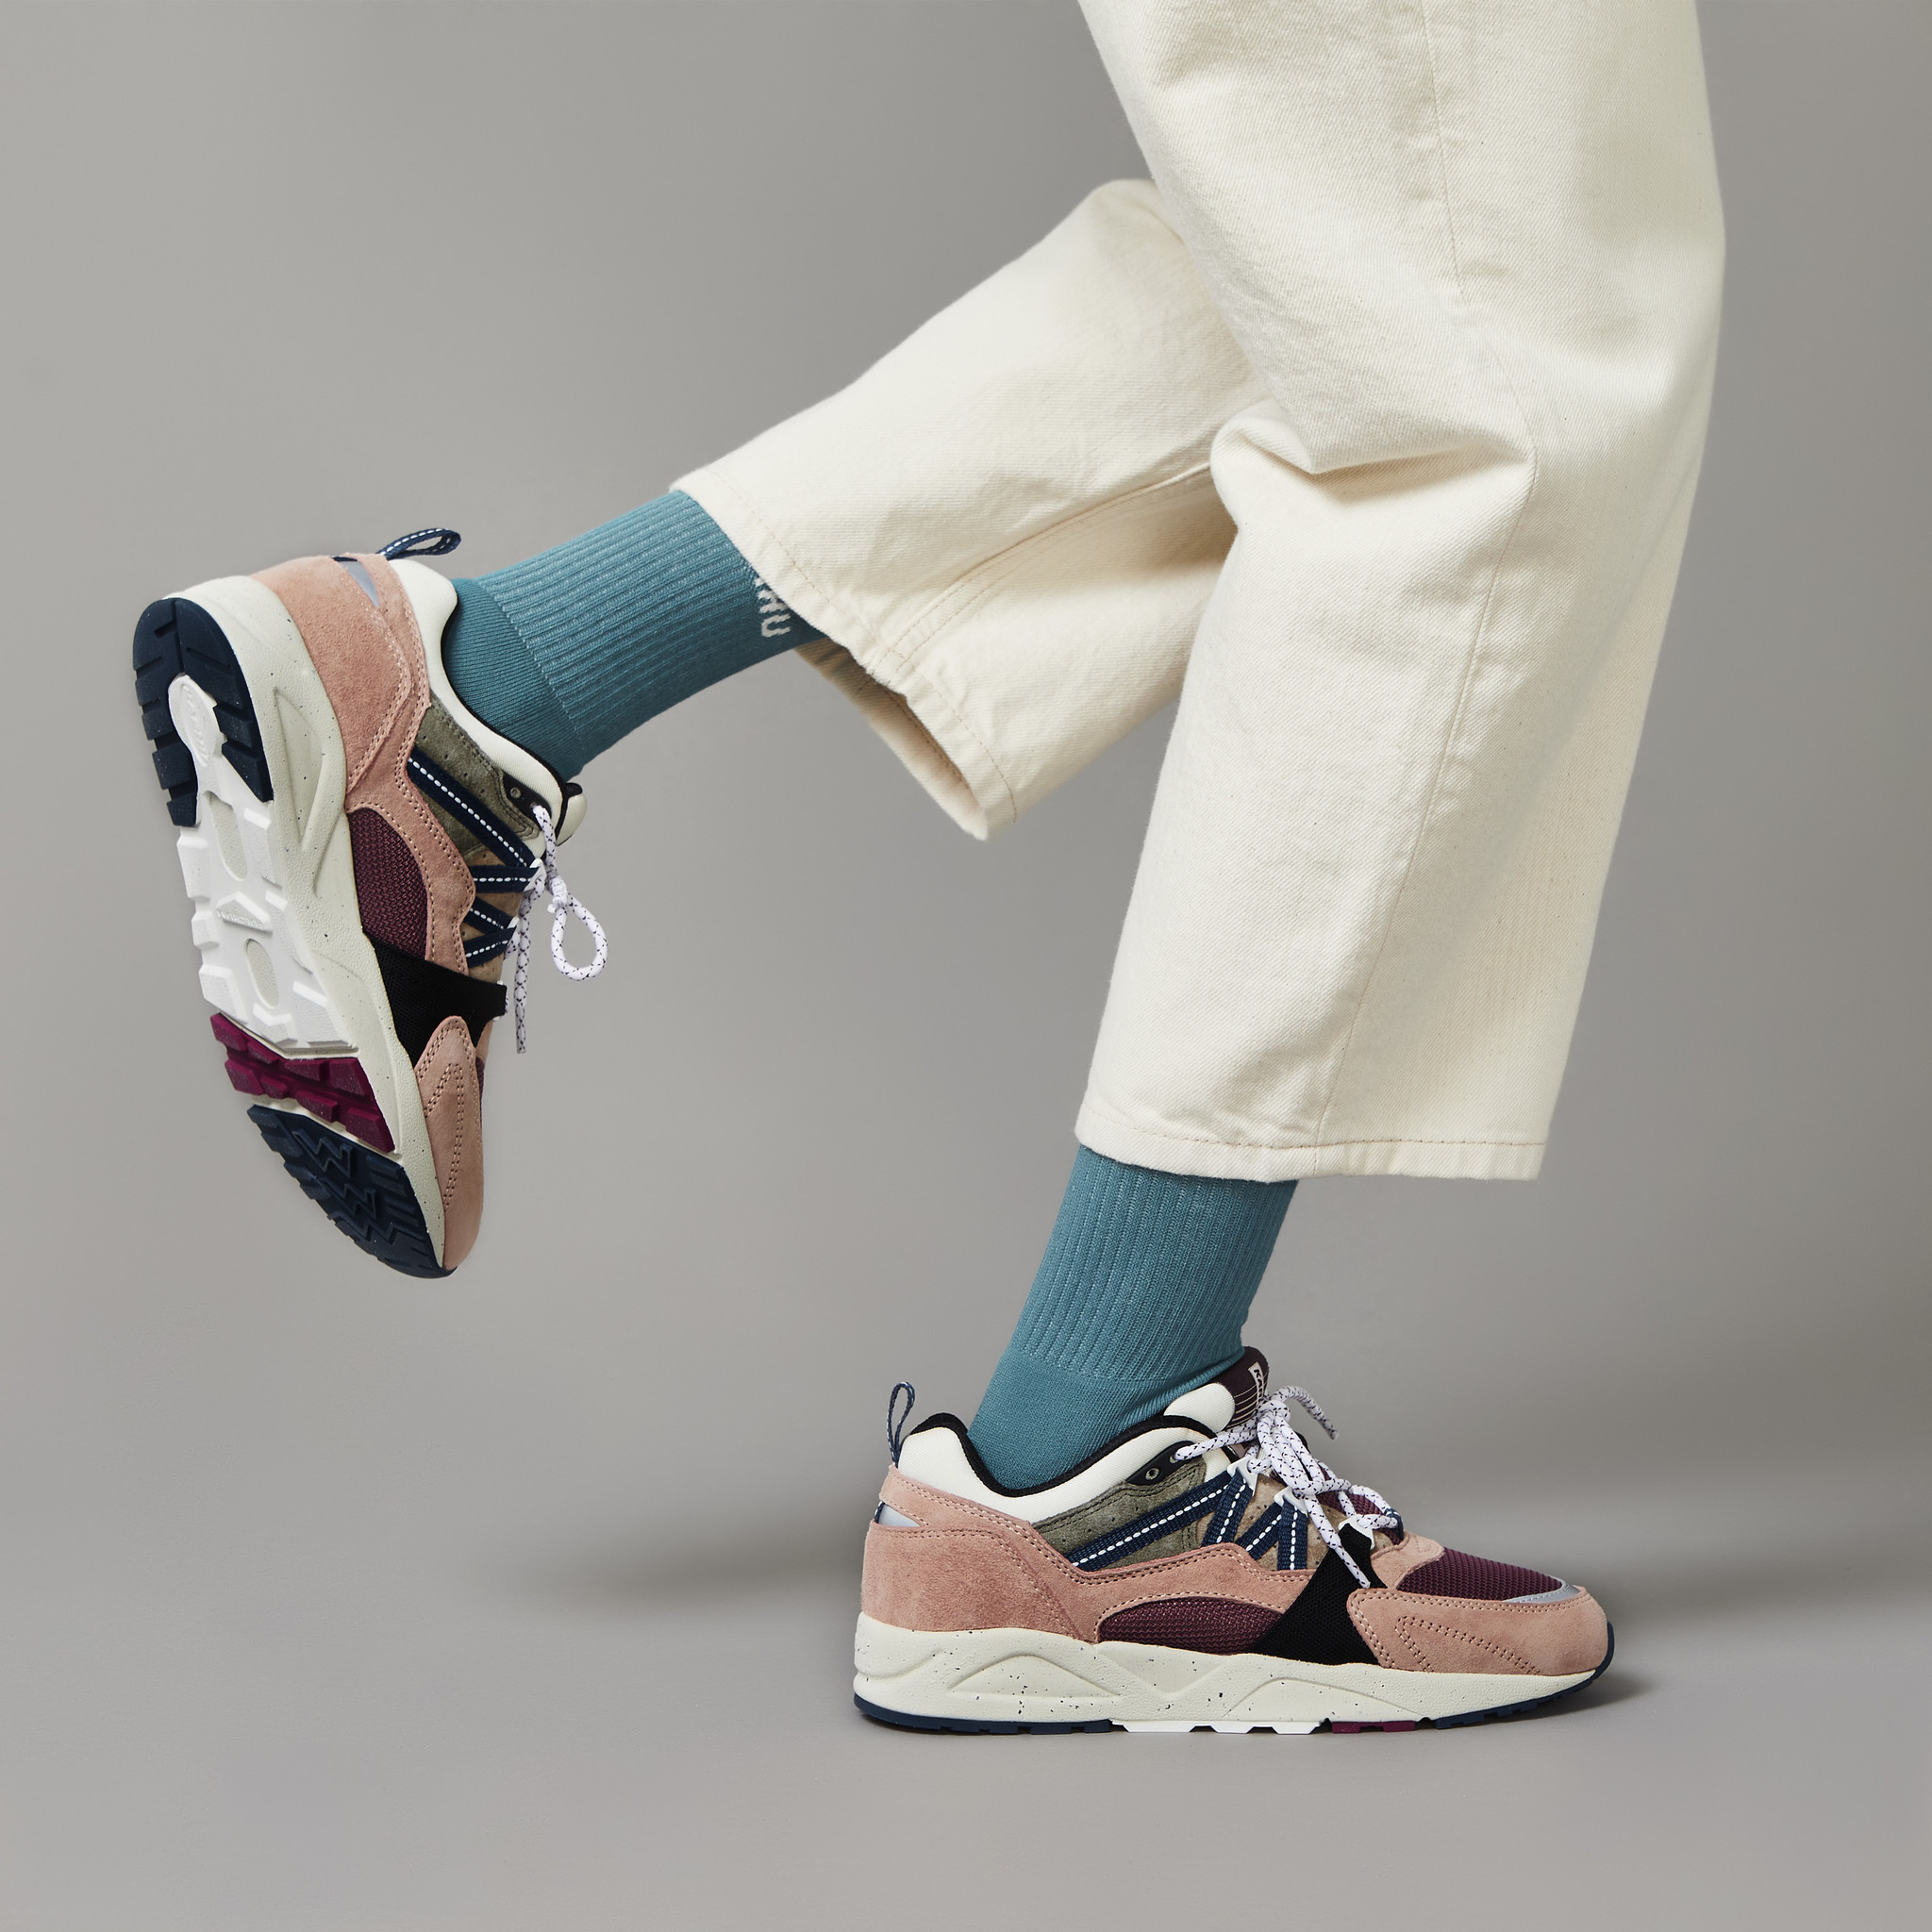 "Karhu Fusion 2.0 ""Colour Of Mood"" Pack Part 3 (Misty Rose/Reflecting Pond) F804087"